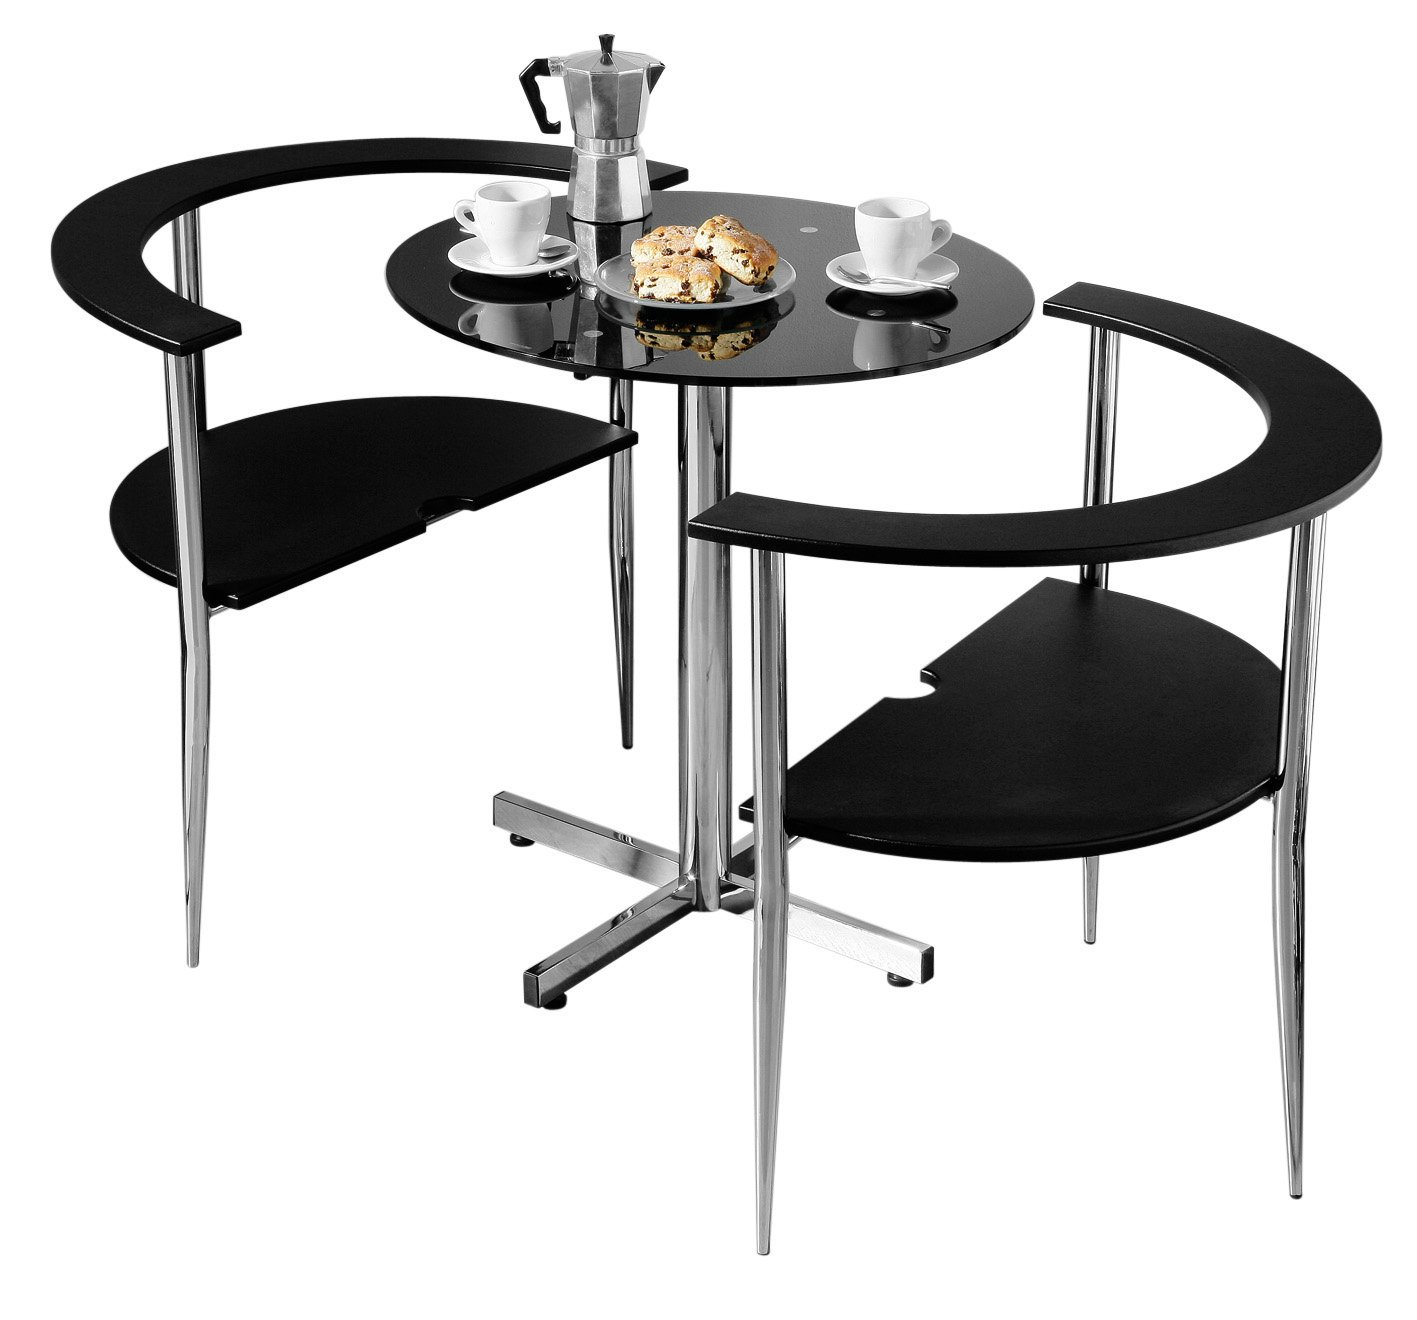 Premier Housewares Love Dining Table and Chair Set Round Shaped with Black Tempered Glass Top and Chrome Legs 75 x 80 x 94 cm 3 Pieces Amazon.co.uk ...  sc 1 st  Amazon UK & Premier Housewares Love Dining Table and Chair Set Round Shaped ...